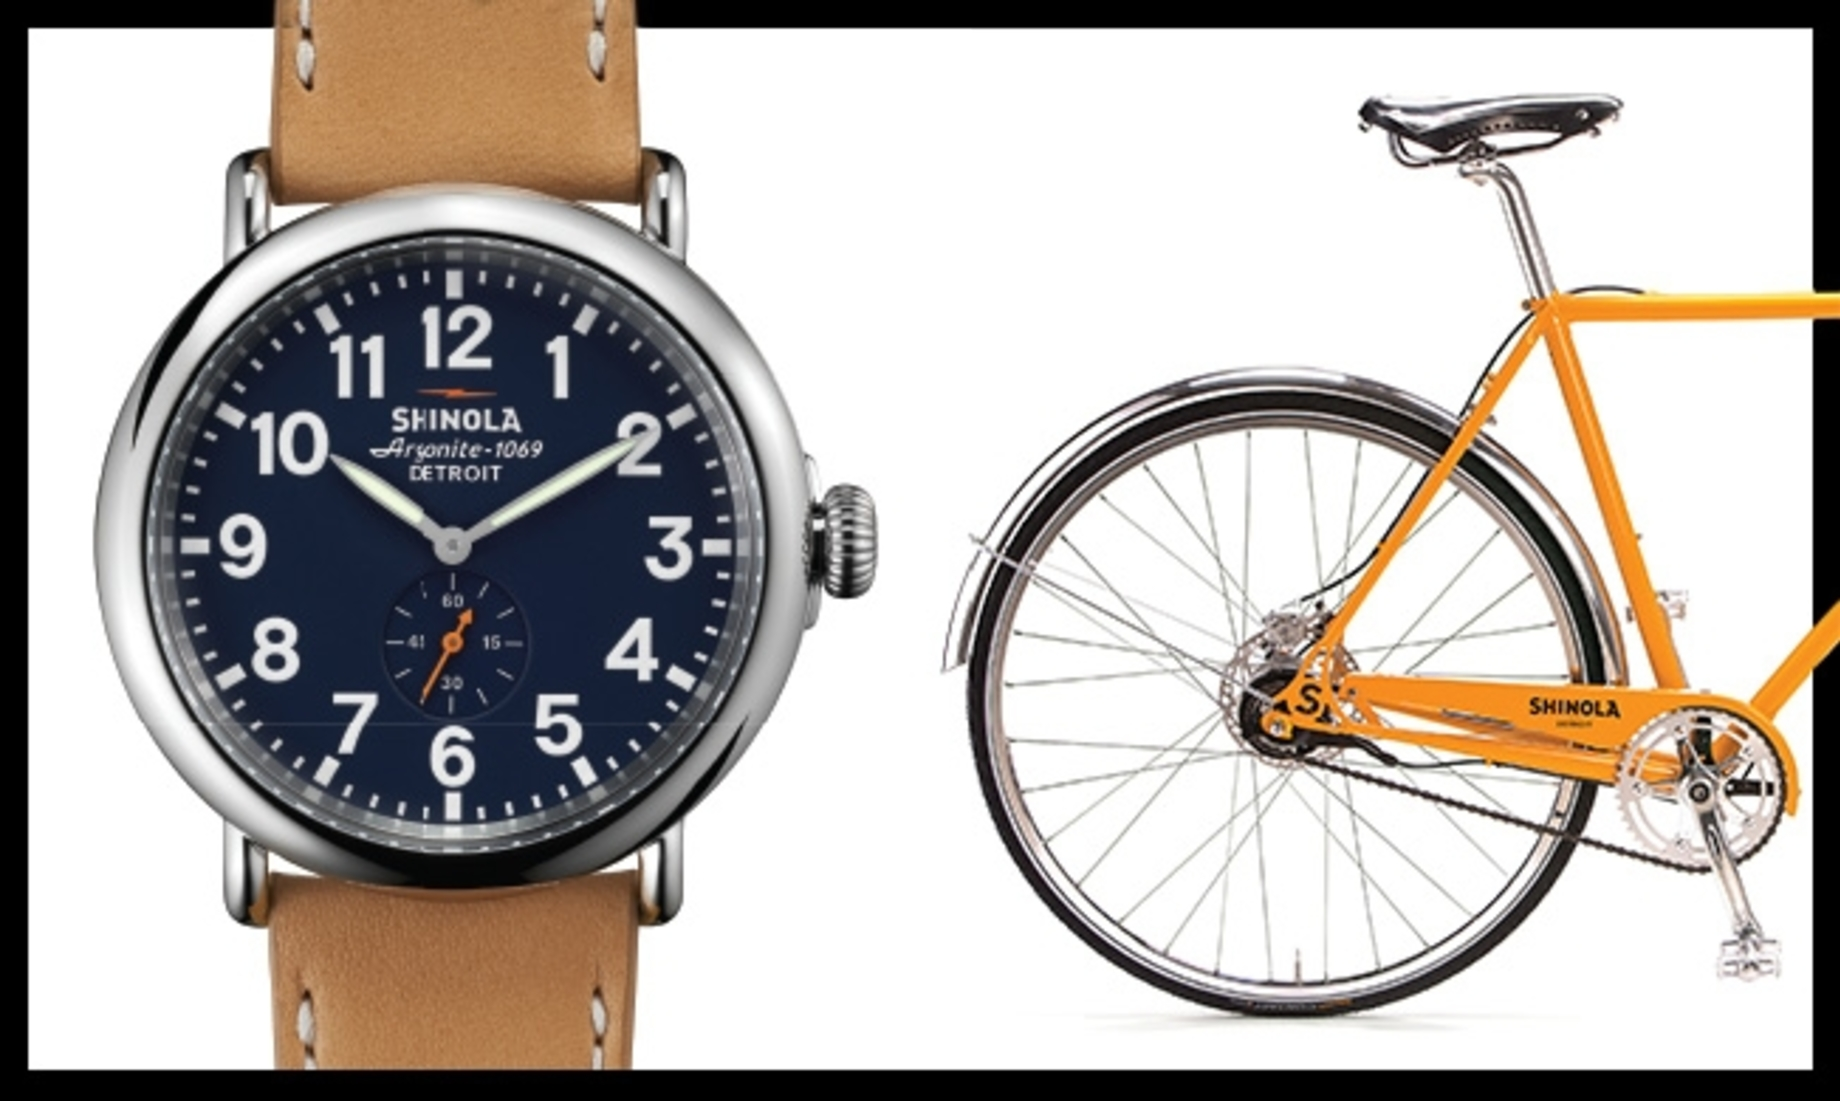 Shinola Is Building A Brand Its Own Way